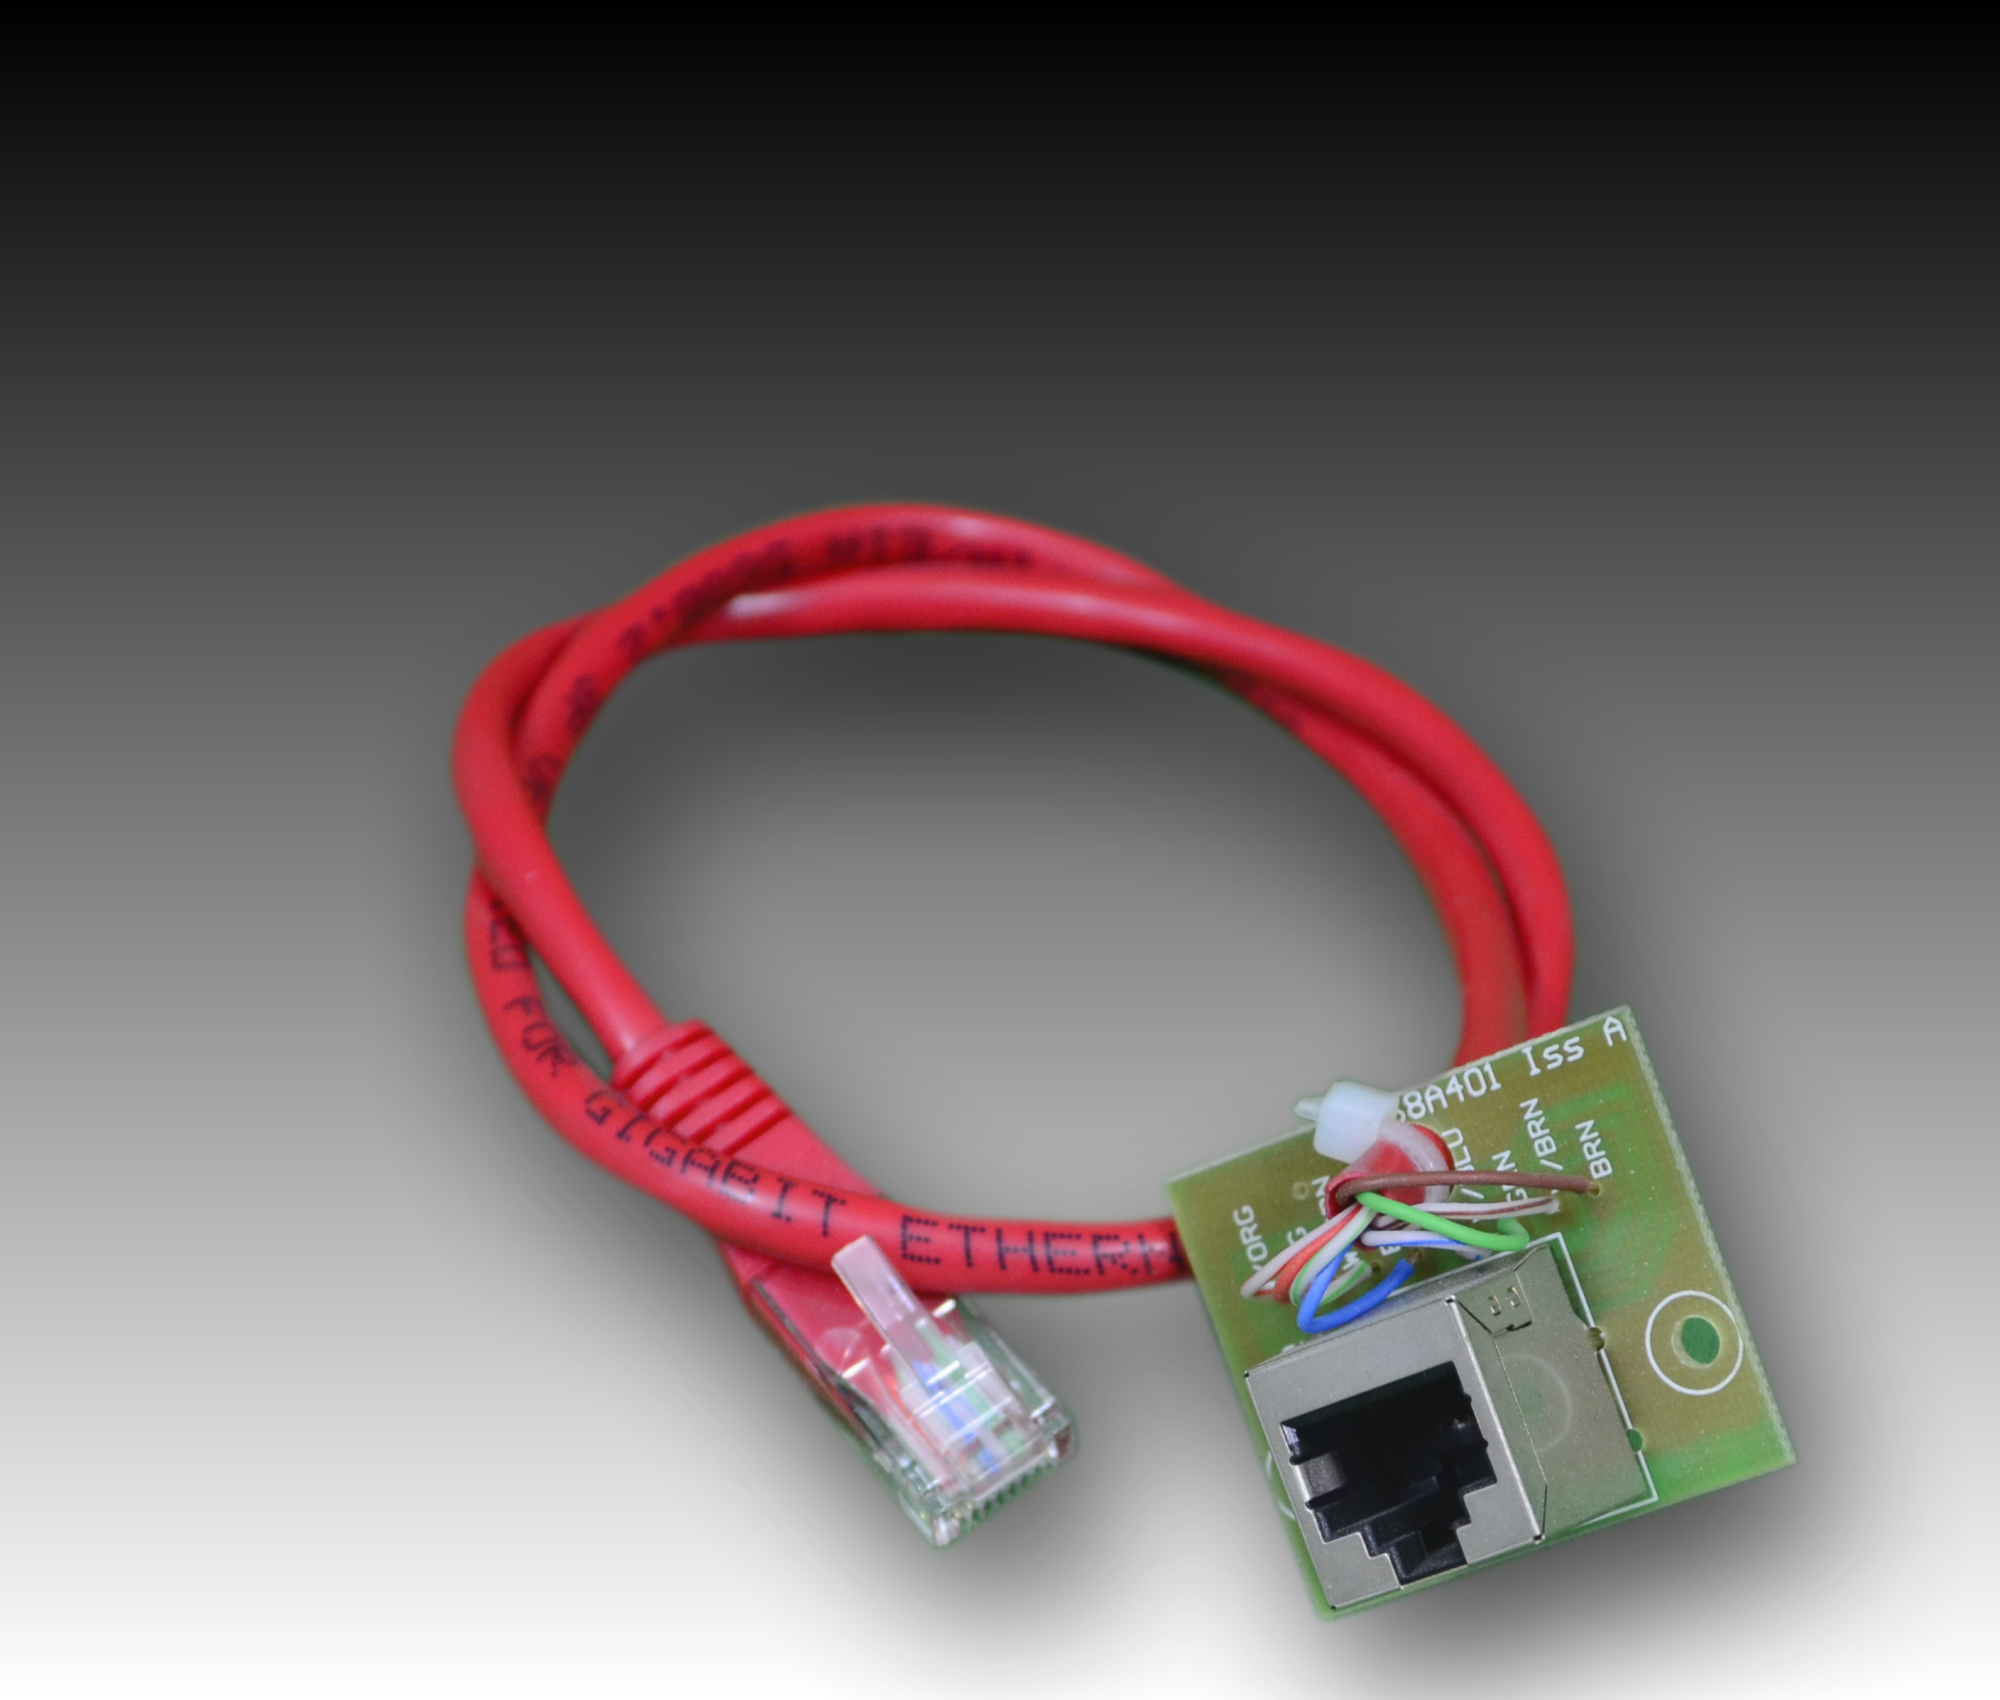 hight resolution of custom pc cable assembly bespoke network cable